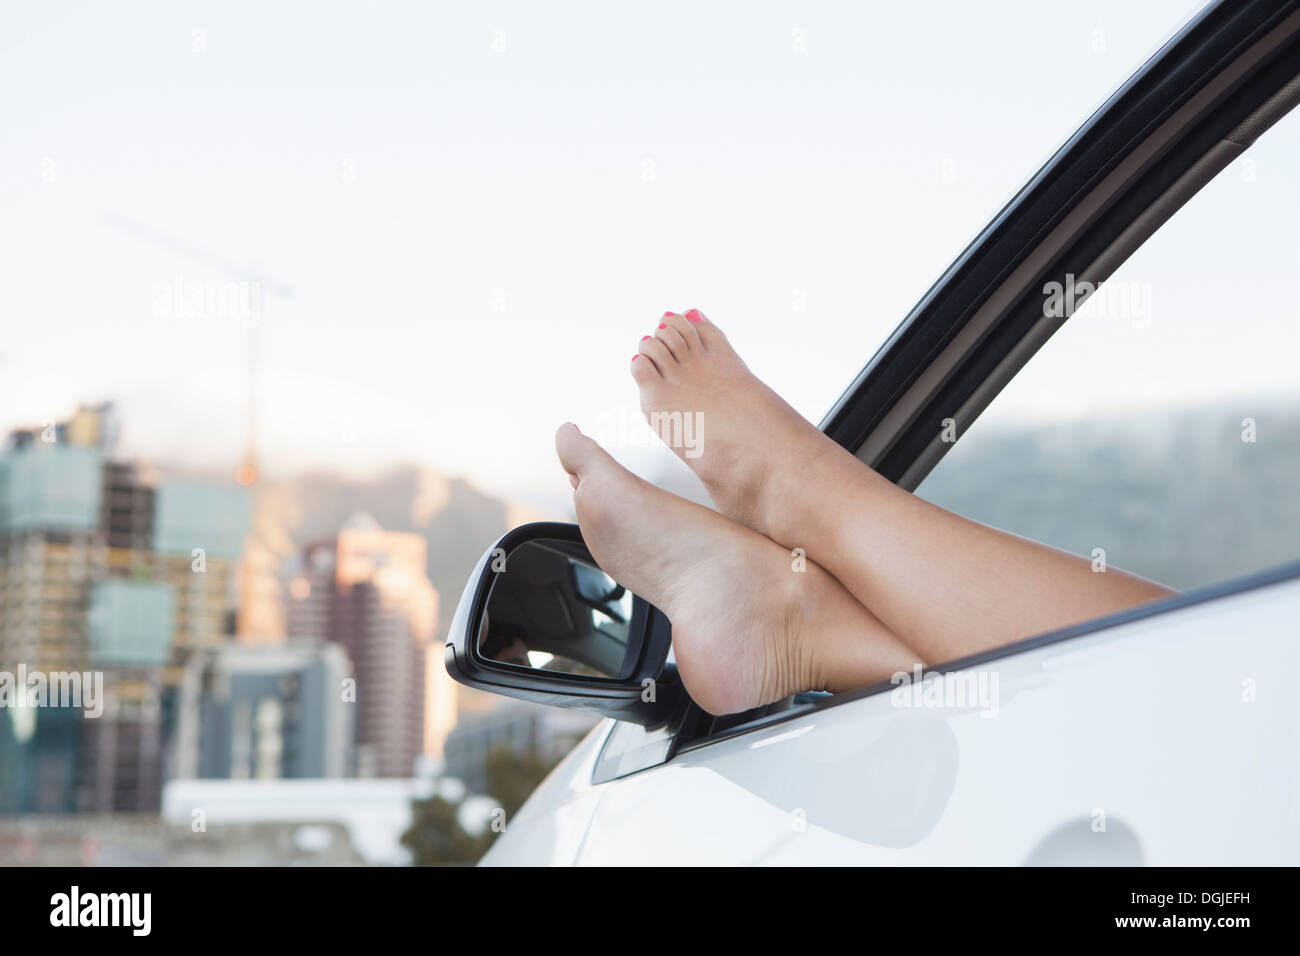 Young woman with feet up through car window - Stock Image